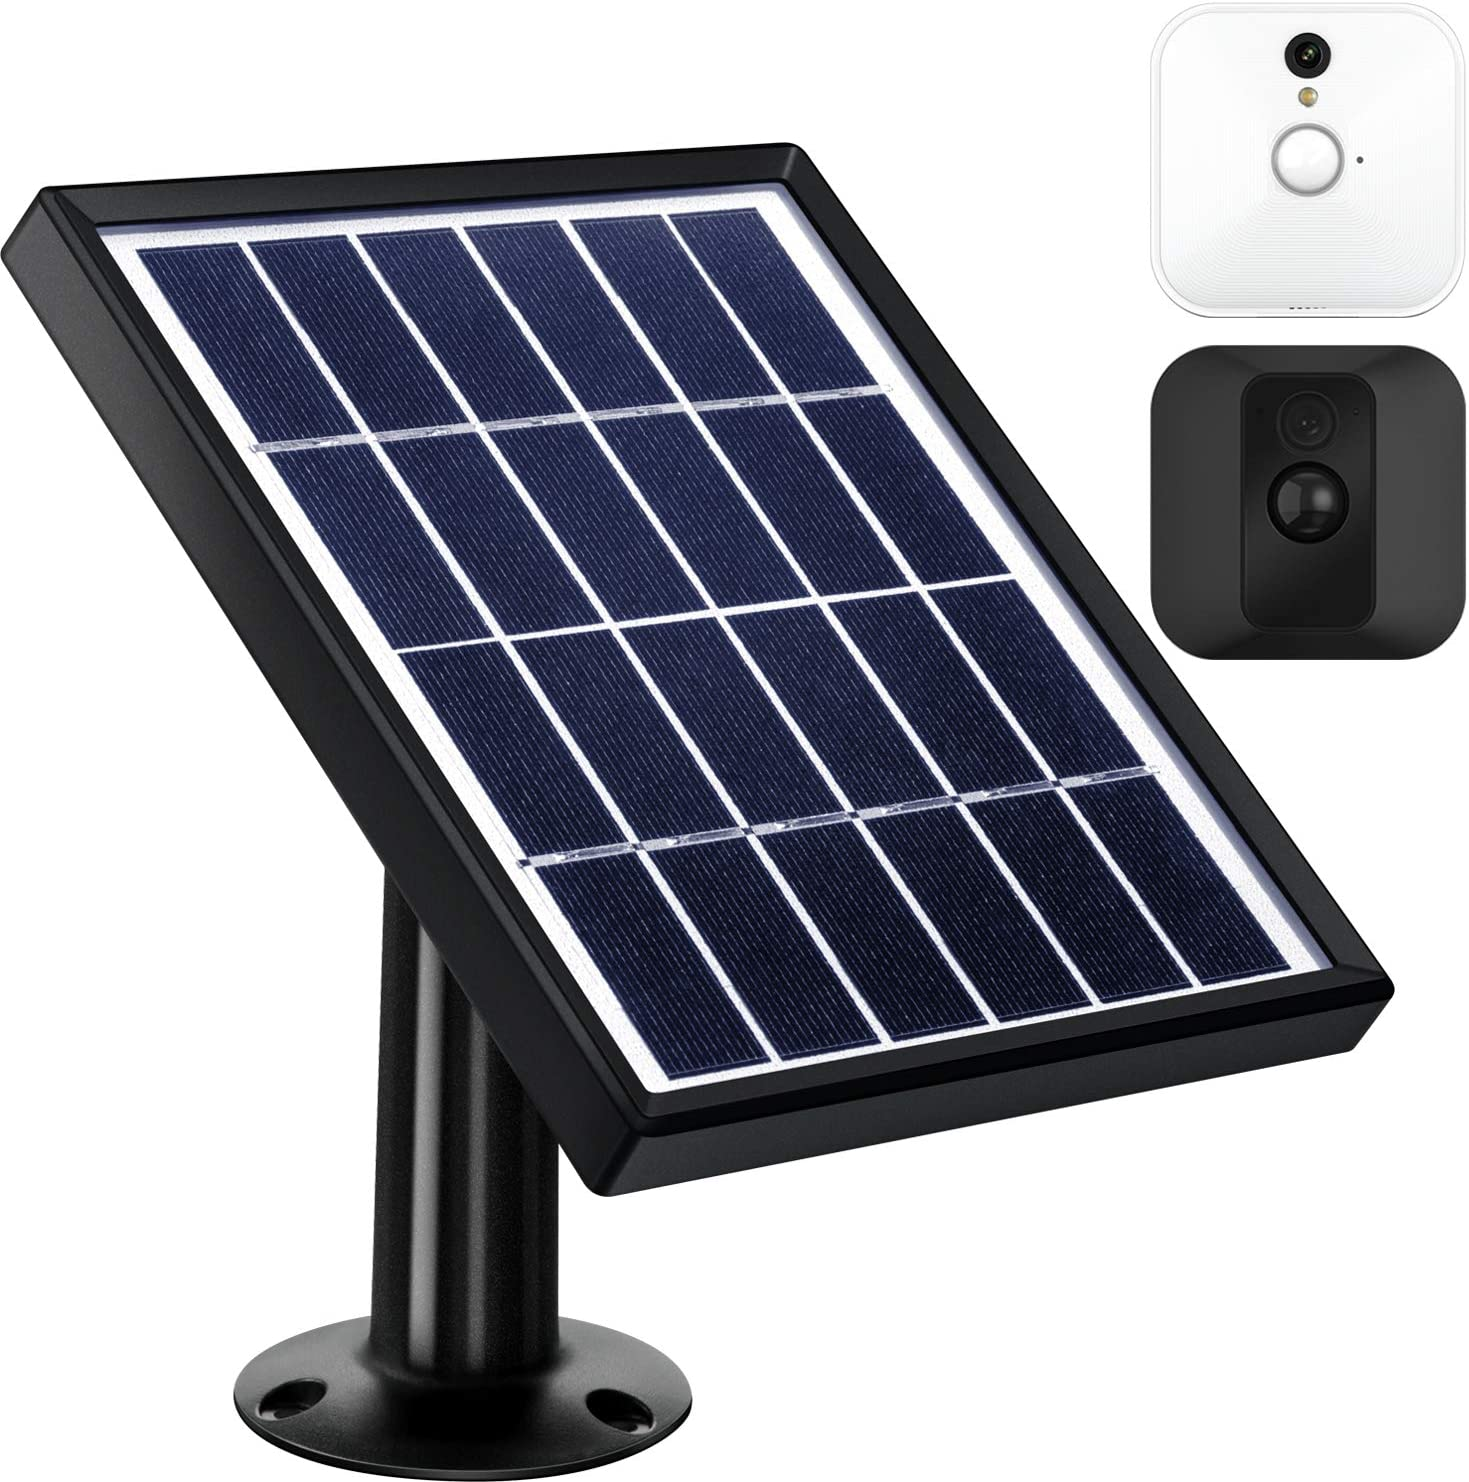 Solar Panel Compatible with Blink XT XT2 Outdoor Indoor Security Camera and an Adjustable Mount, 12 Feet 3.6 m Cable, Supply Power Continuously by Solar Panel Black